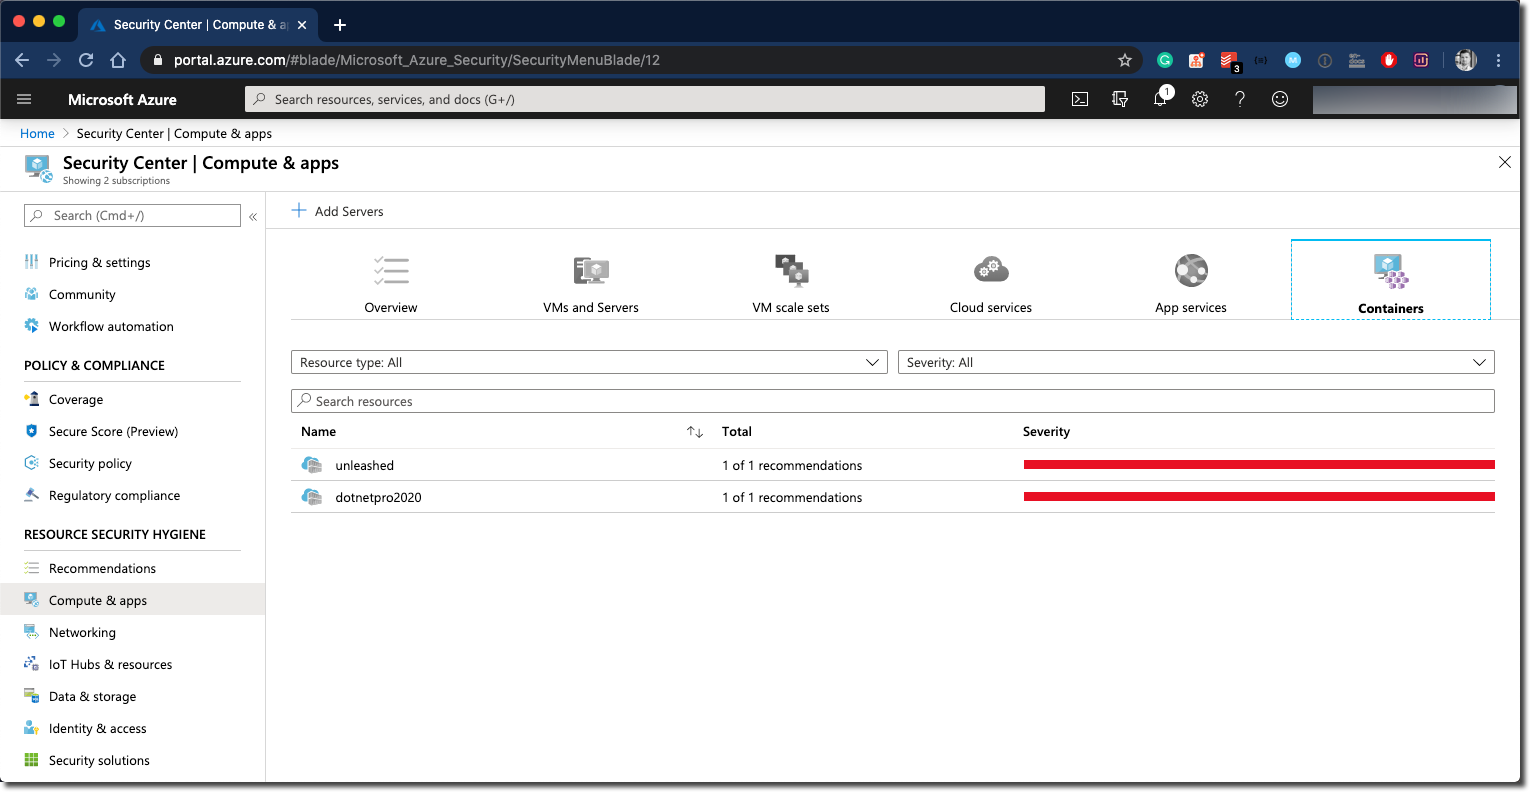 Azure Security Center - Container findings